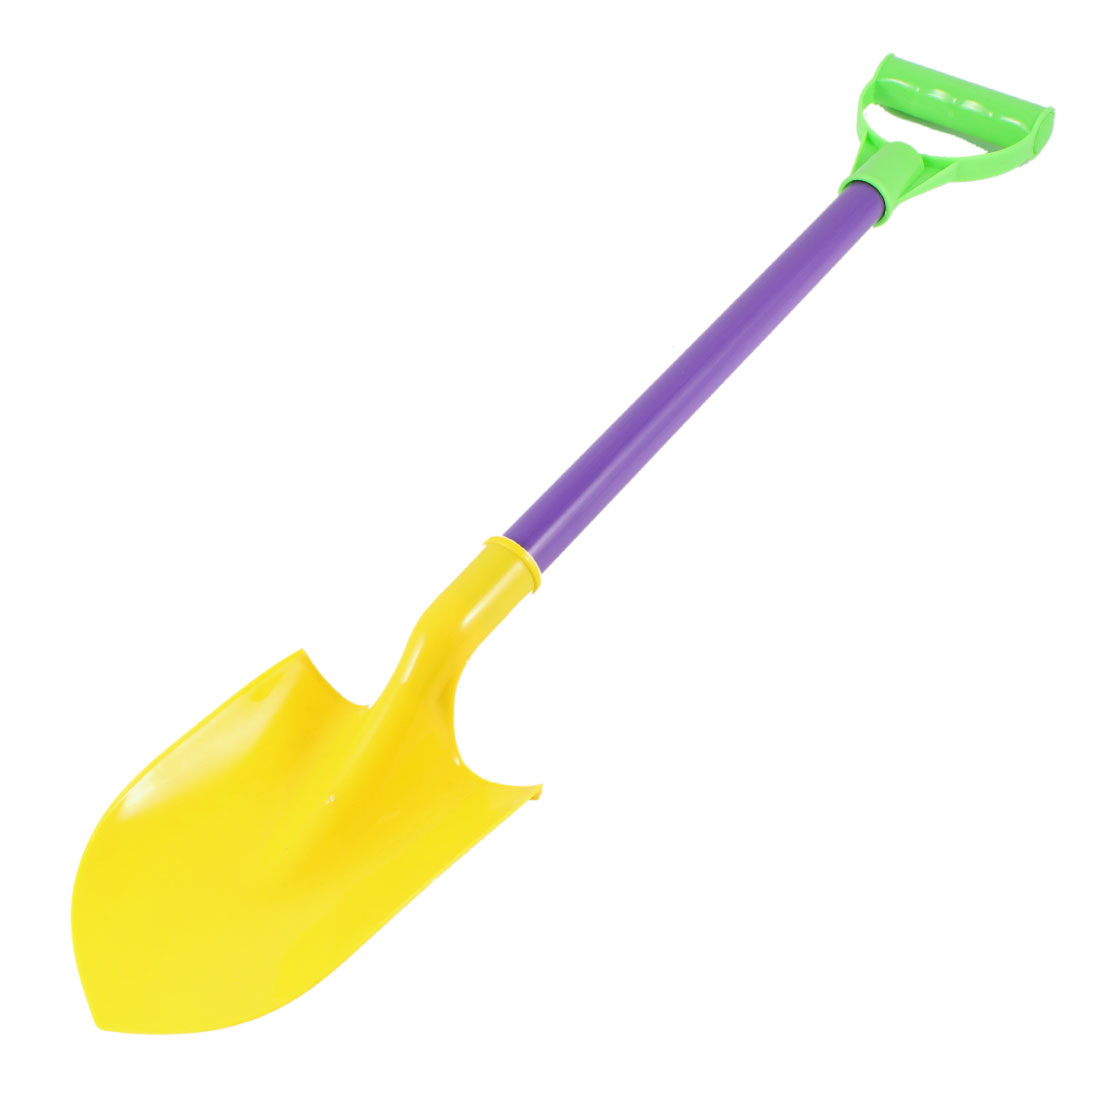 Children-Plastic-Grip-Beach-Sand-Shovel-Rake-Toy-Yellow